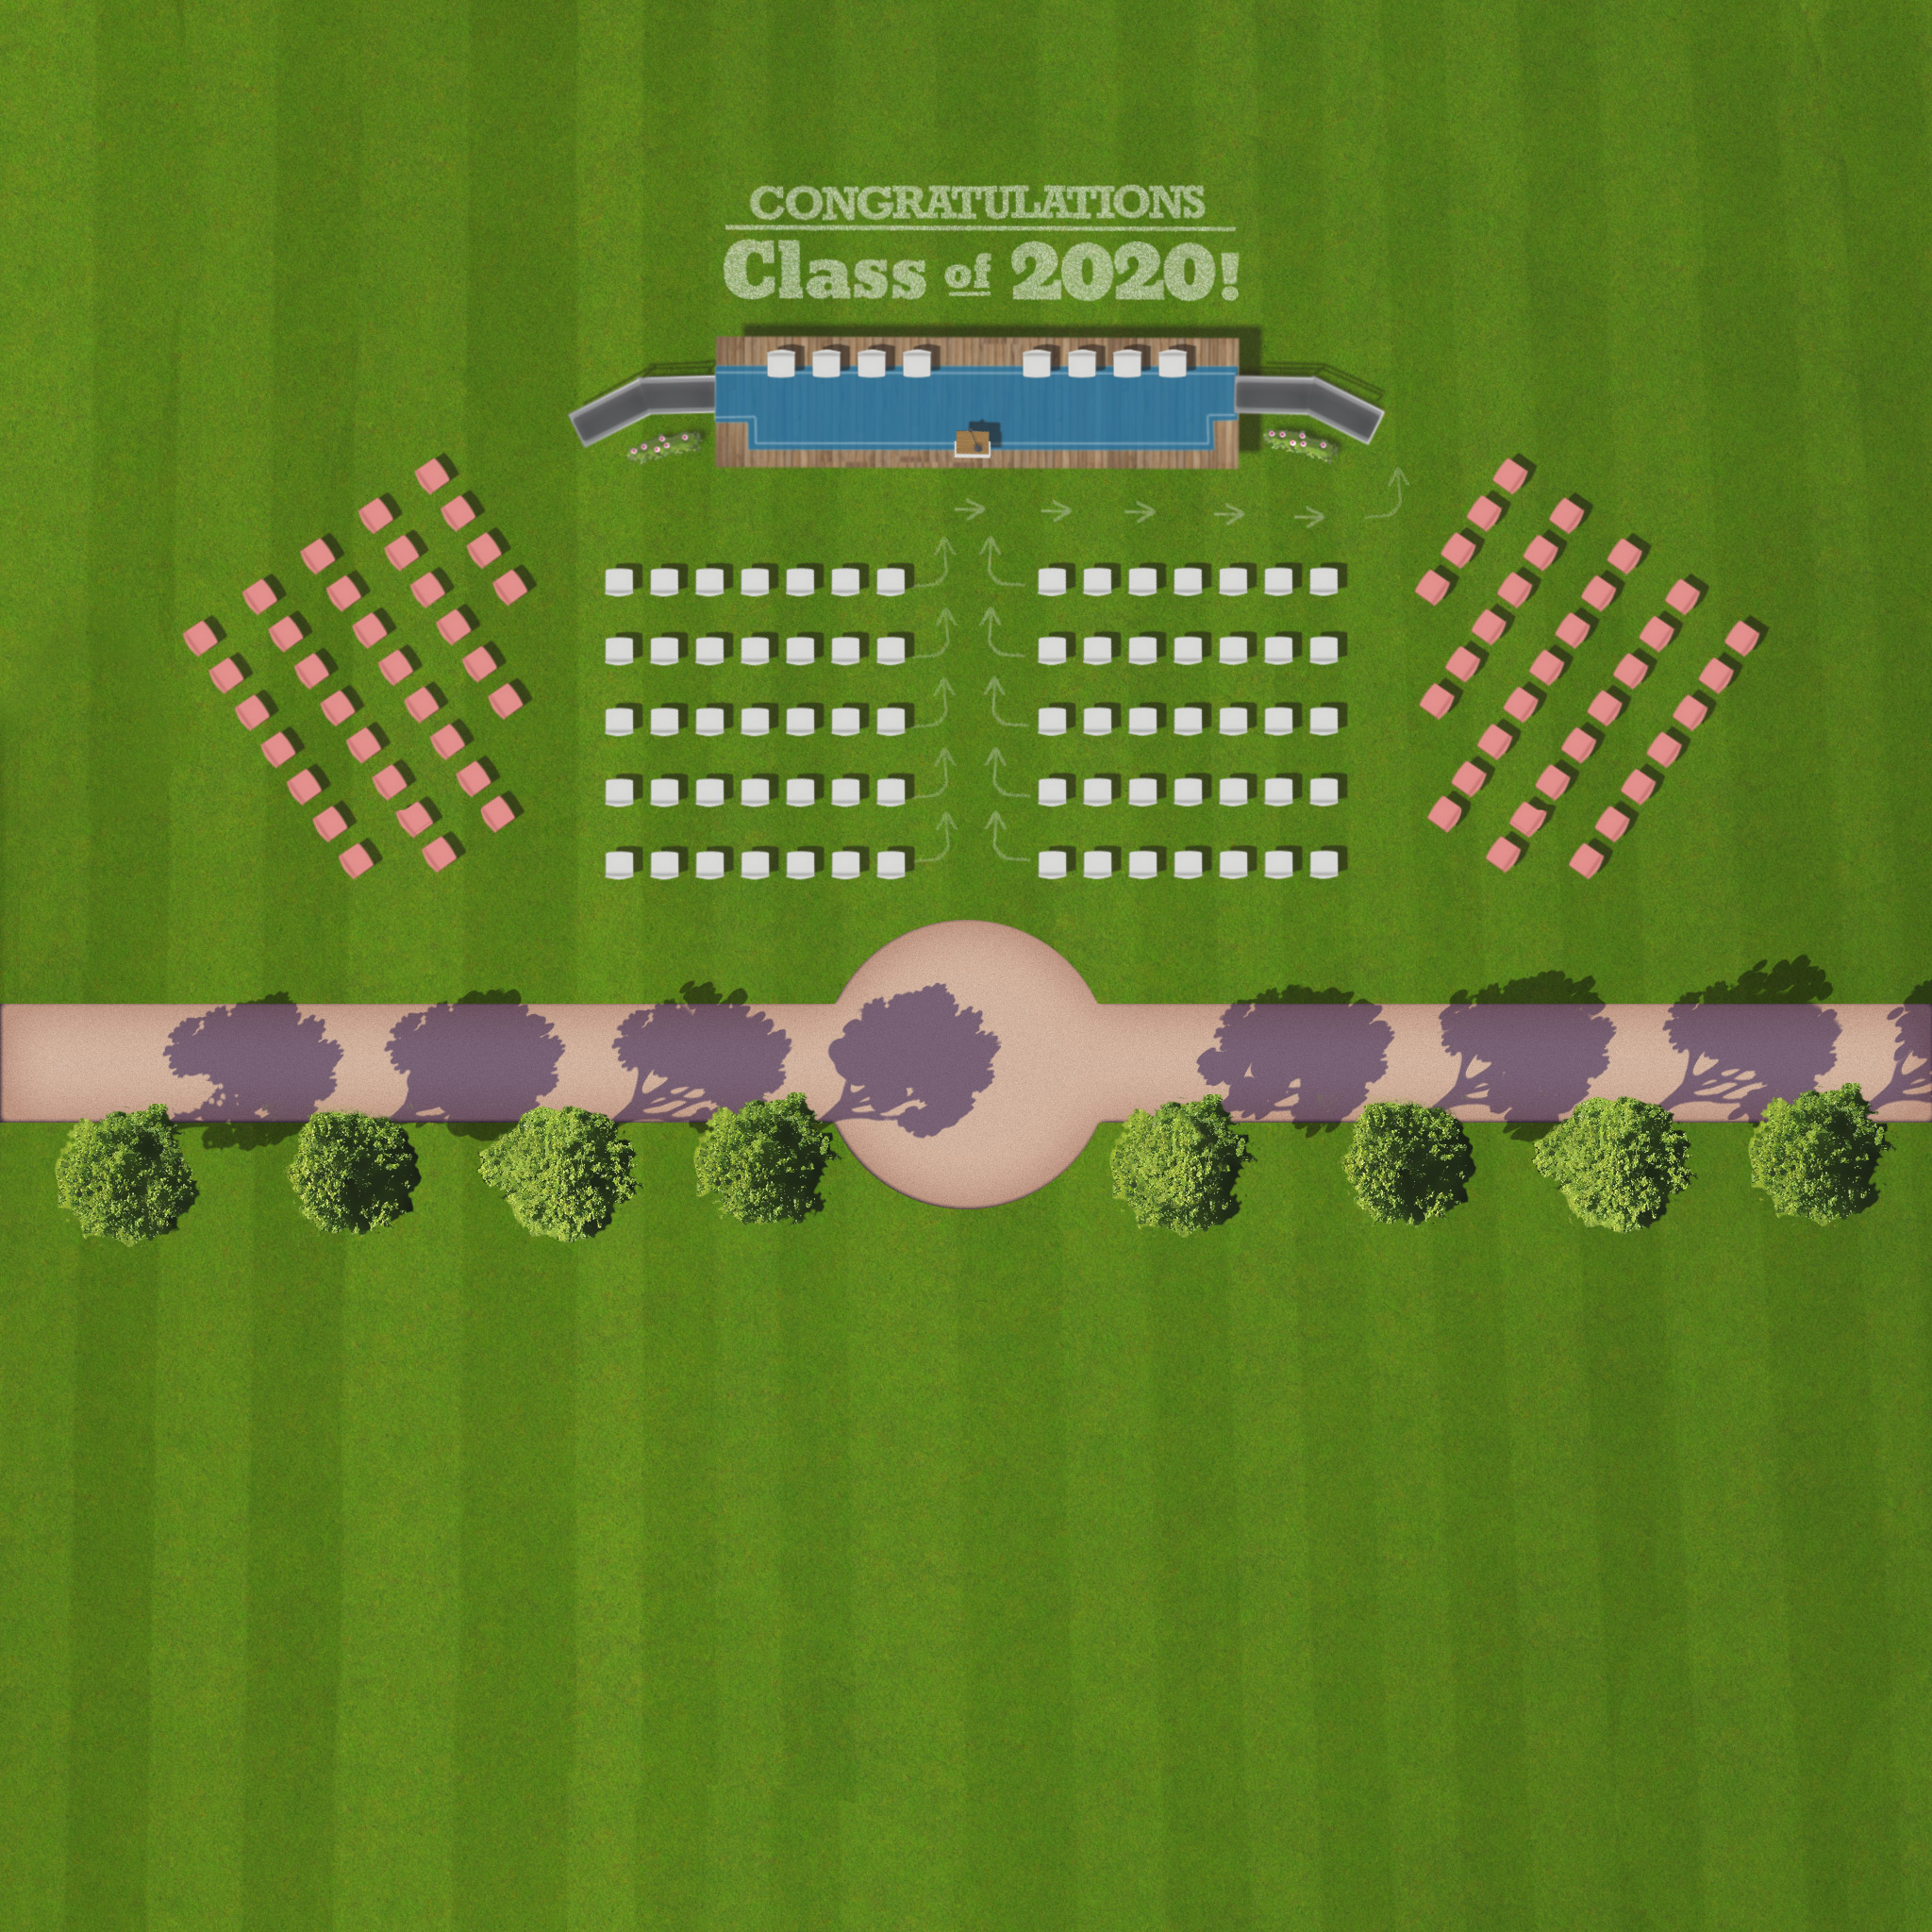 A stage with seating for a graduation ceremony, on a grassy field.